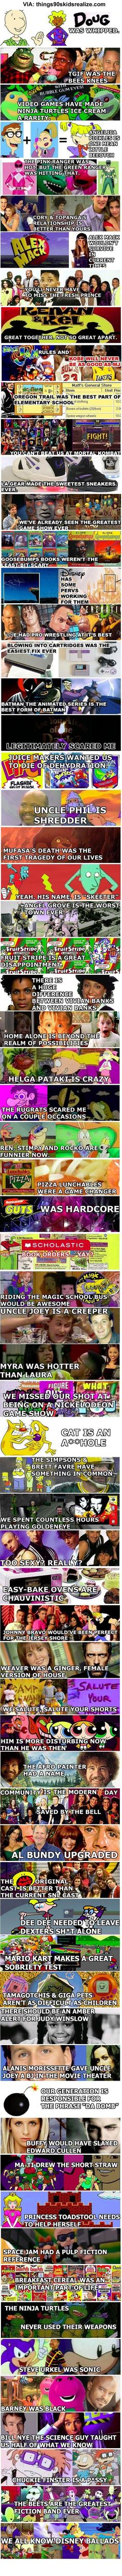 Ahh being a 90's kids was 'Da bomb'!!!!